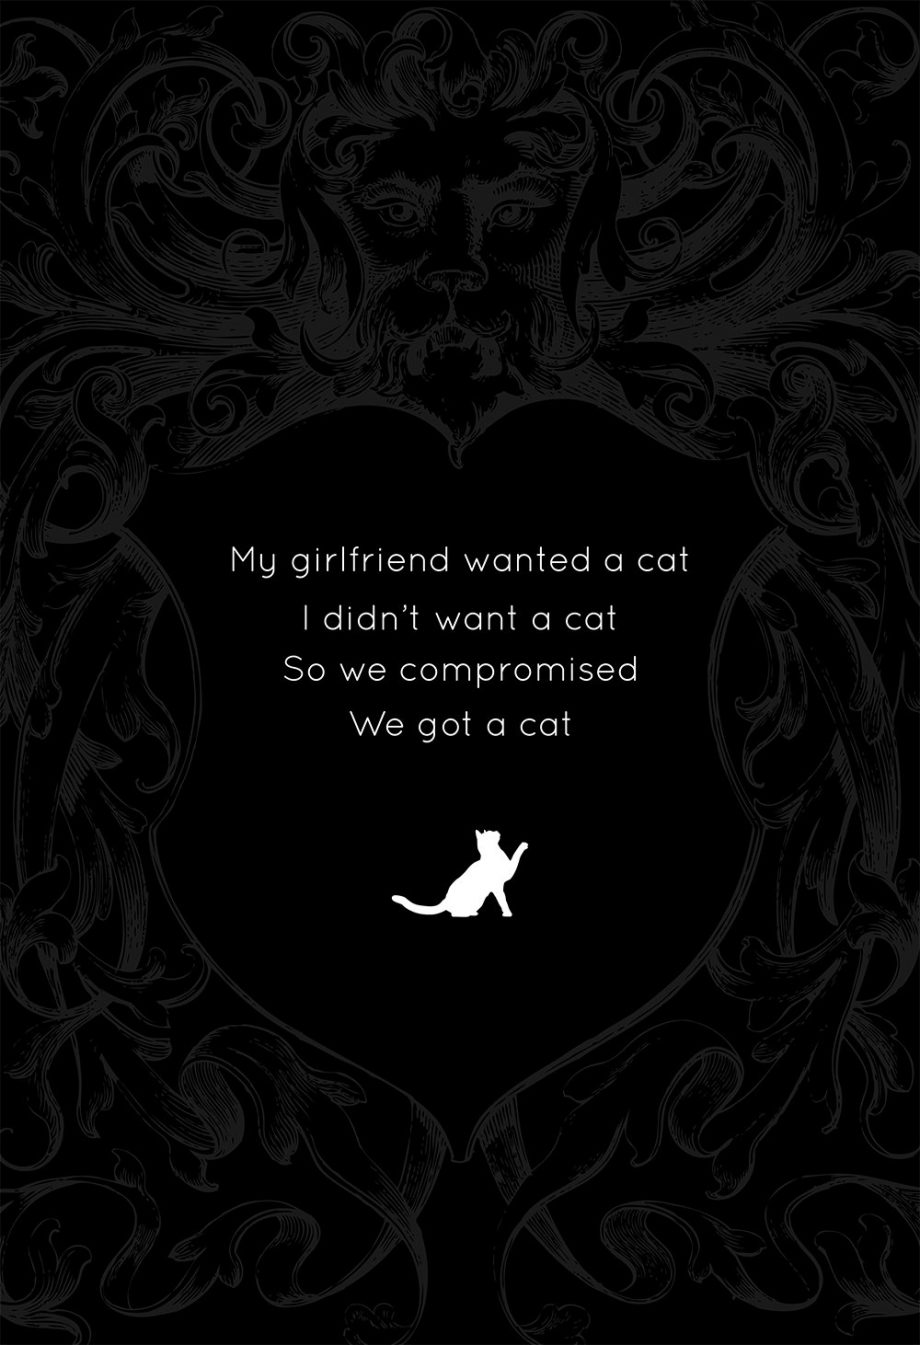 My Girlfriend Wanted A Cat... Original Illustration Vintage Style Giclee Funny Print on Cotton Canvas and Paper Canvas Home Humor Wall Decor